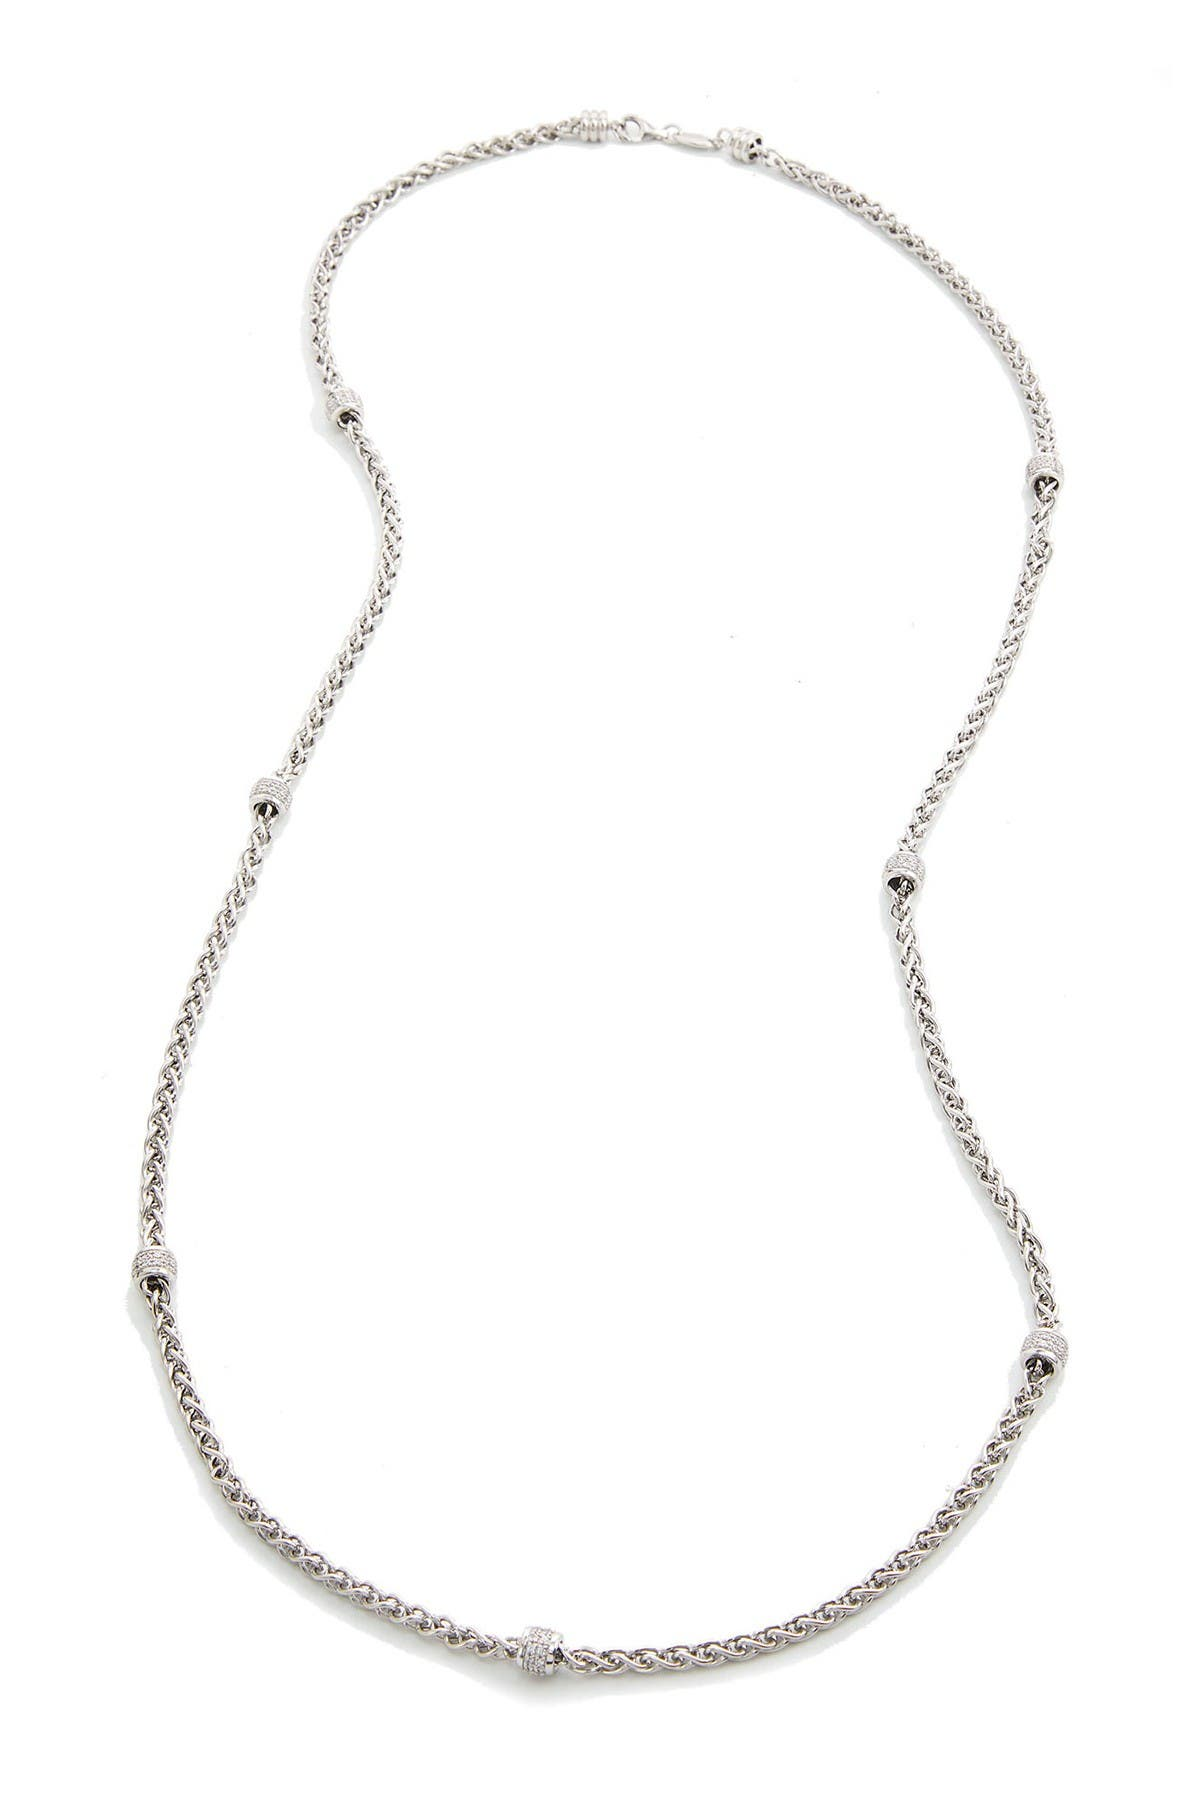 "Image of Savvy Cie Sterling Silver 36"" Wheat CZ Chain Necklace"